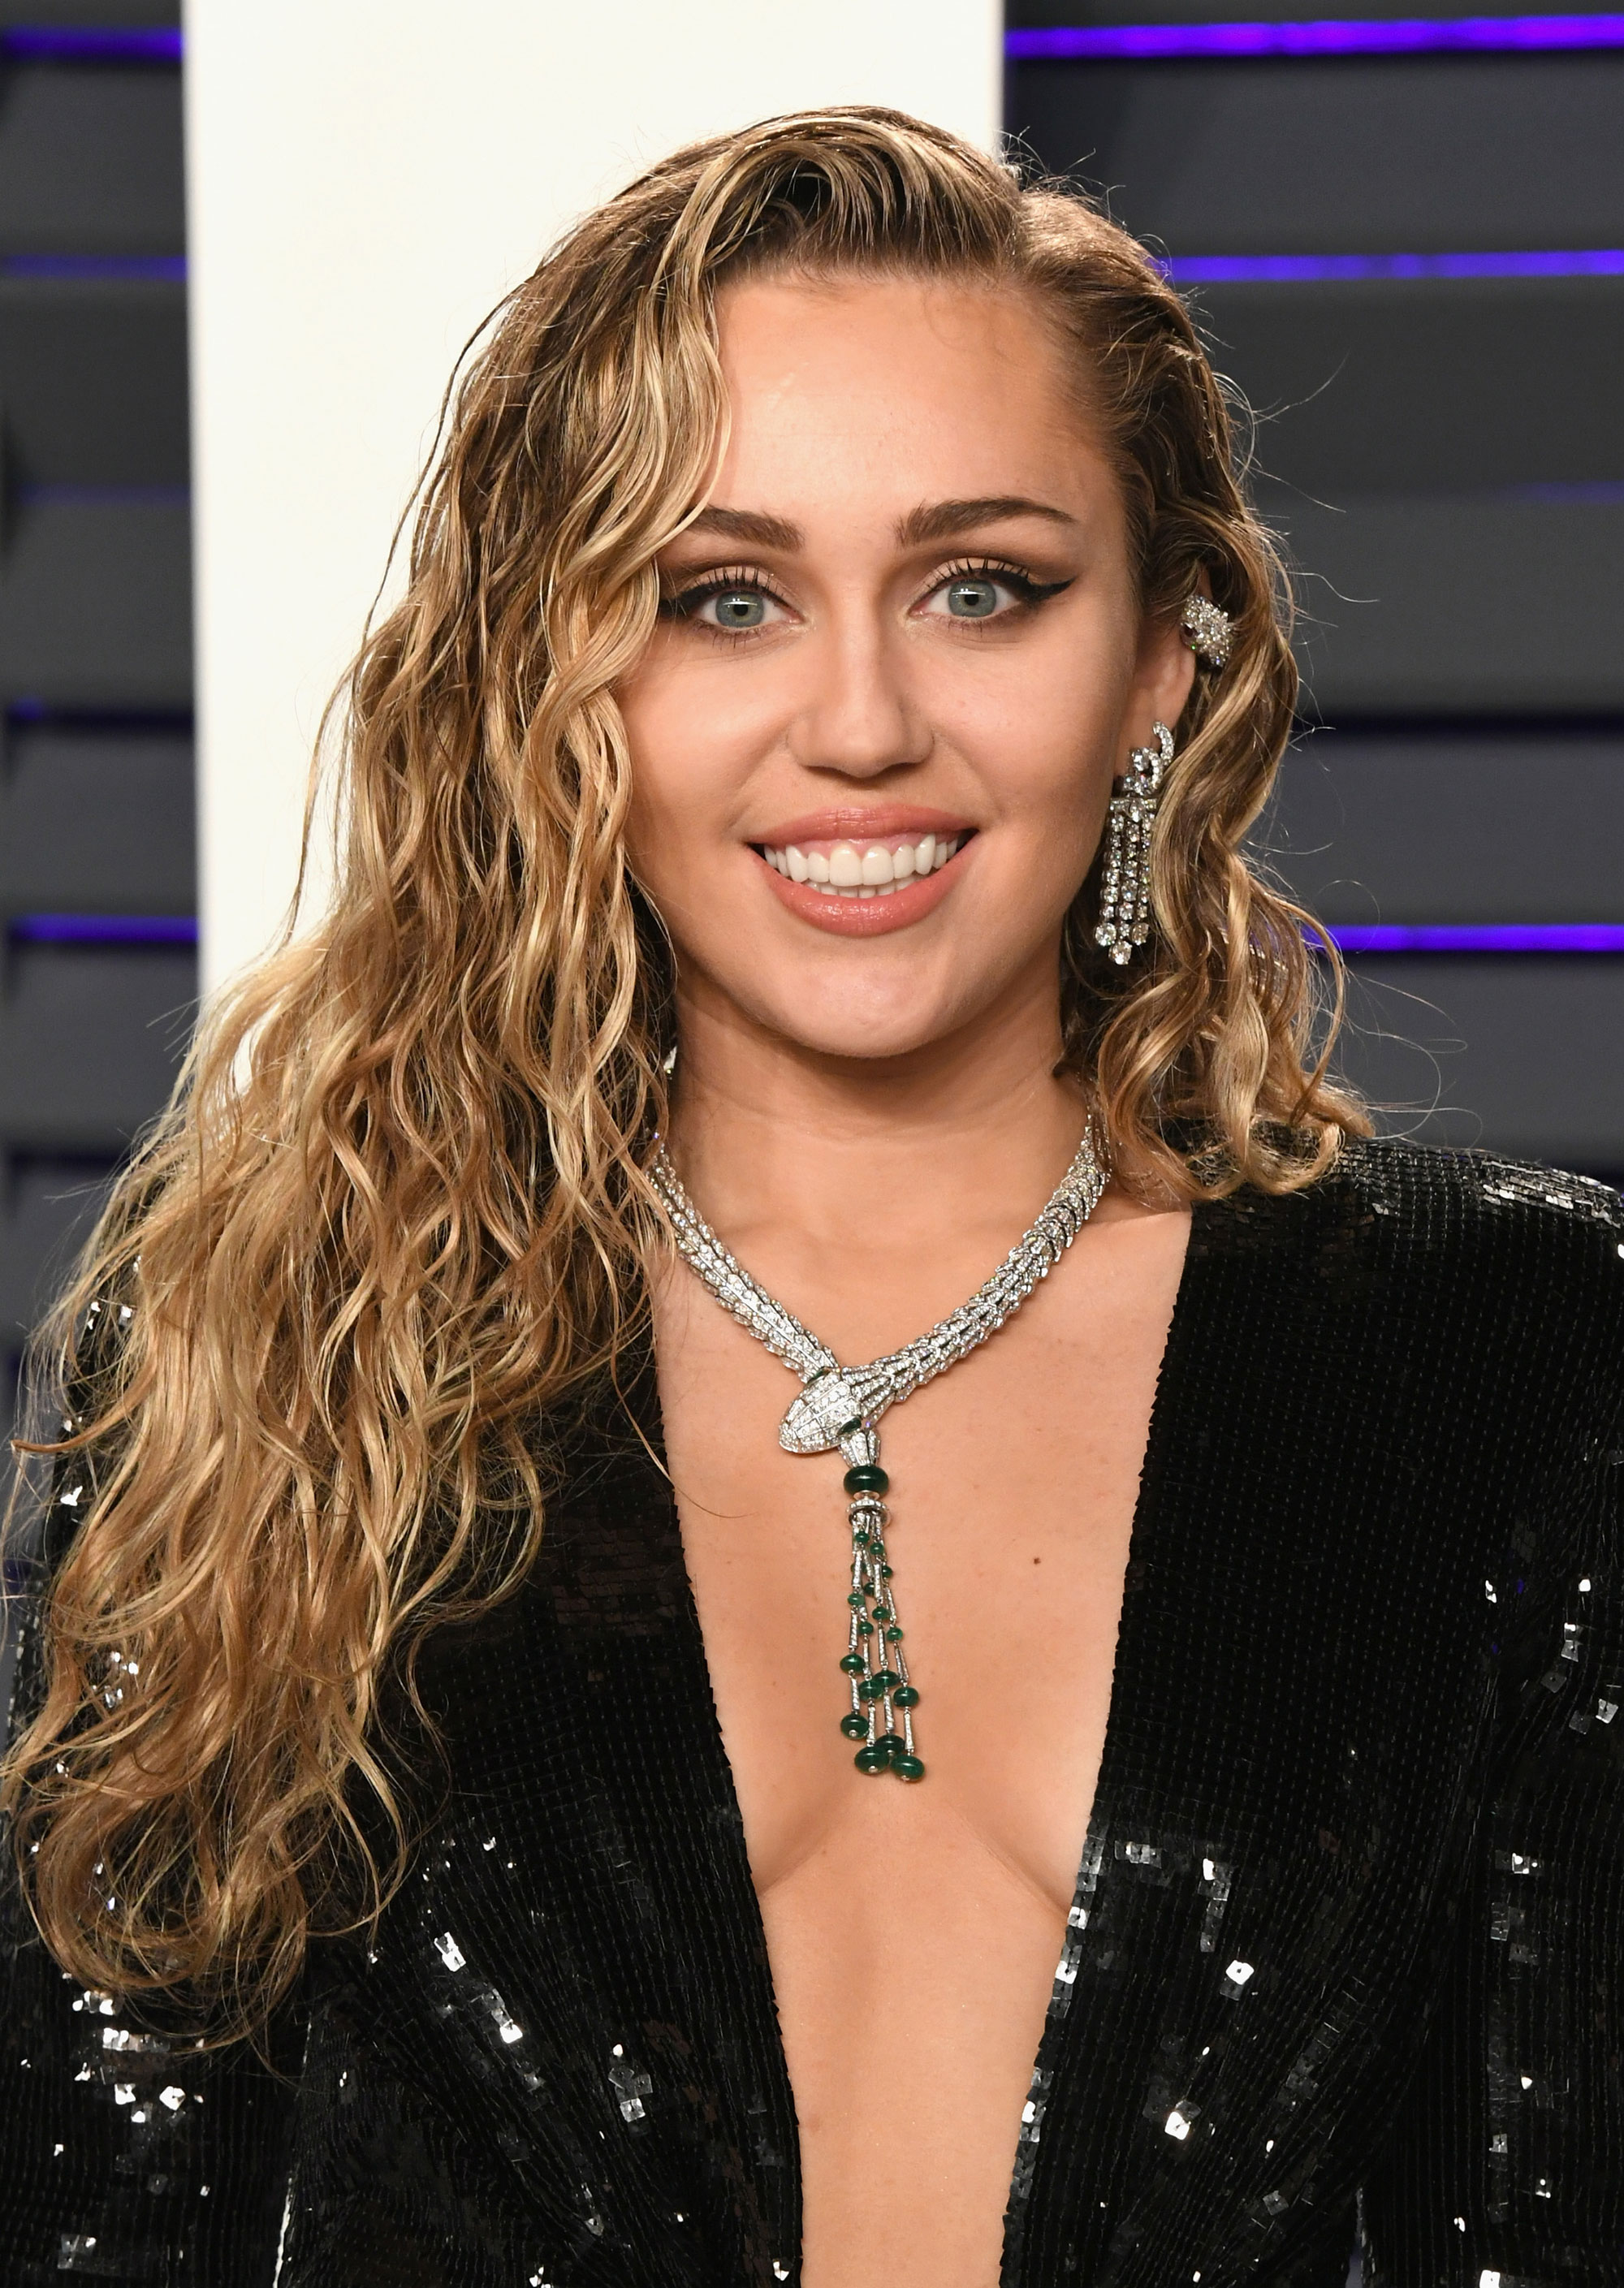 Miley Cyrus's New Tattoo Is Seemingly a Tribute to That Vacation With Kaitlynn Carter